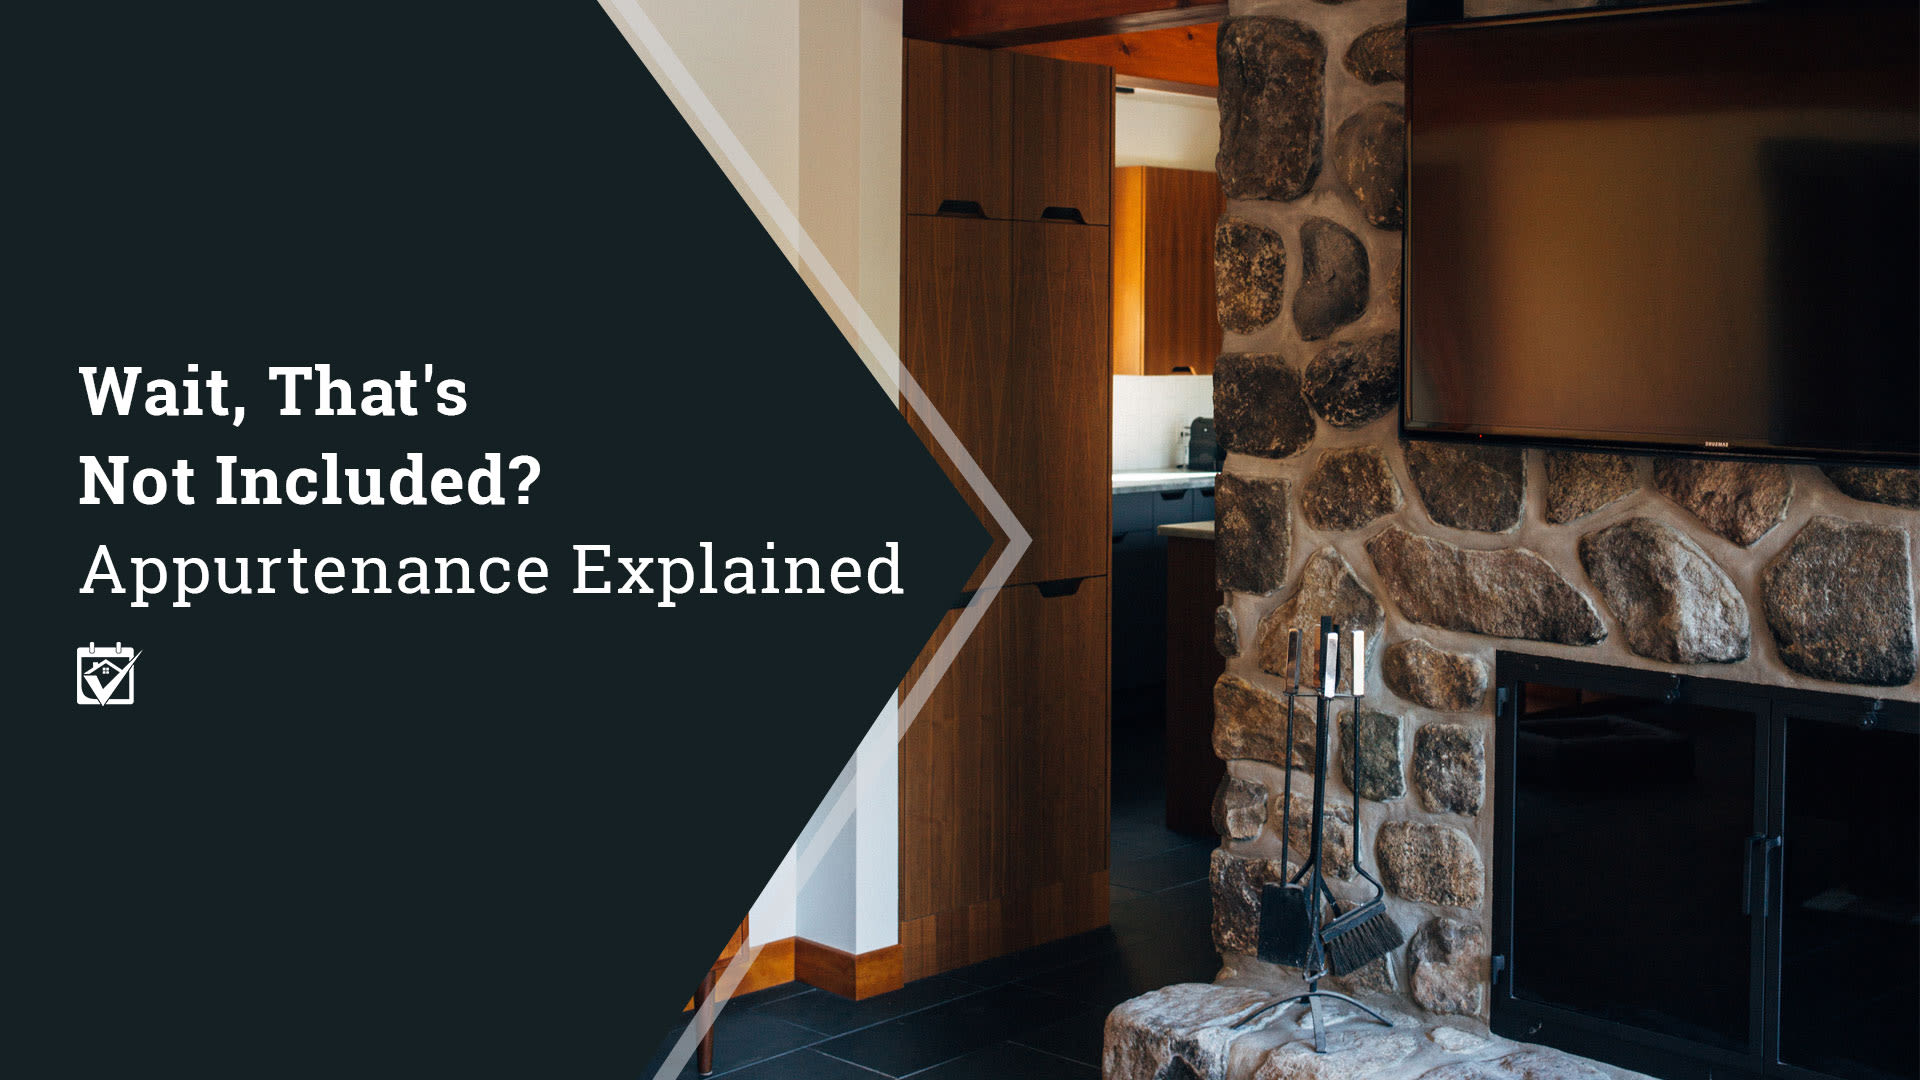 Wait, That's Not Included? Appurtenance Explained